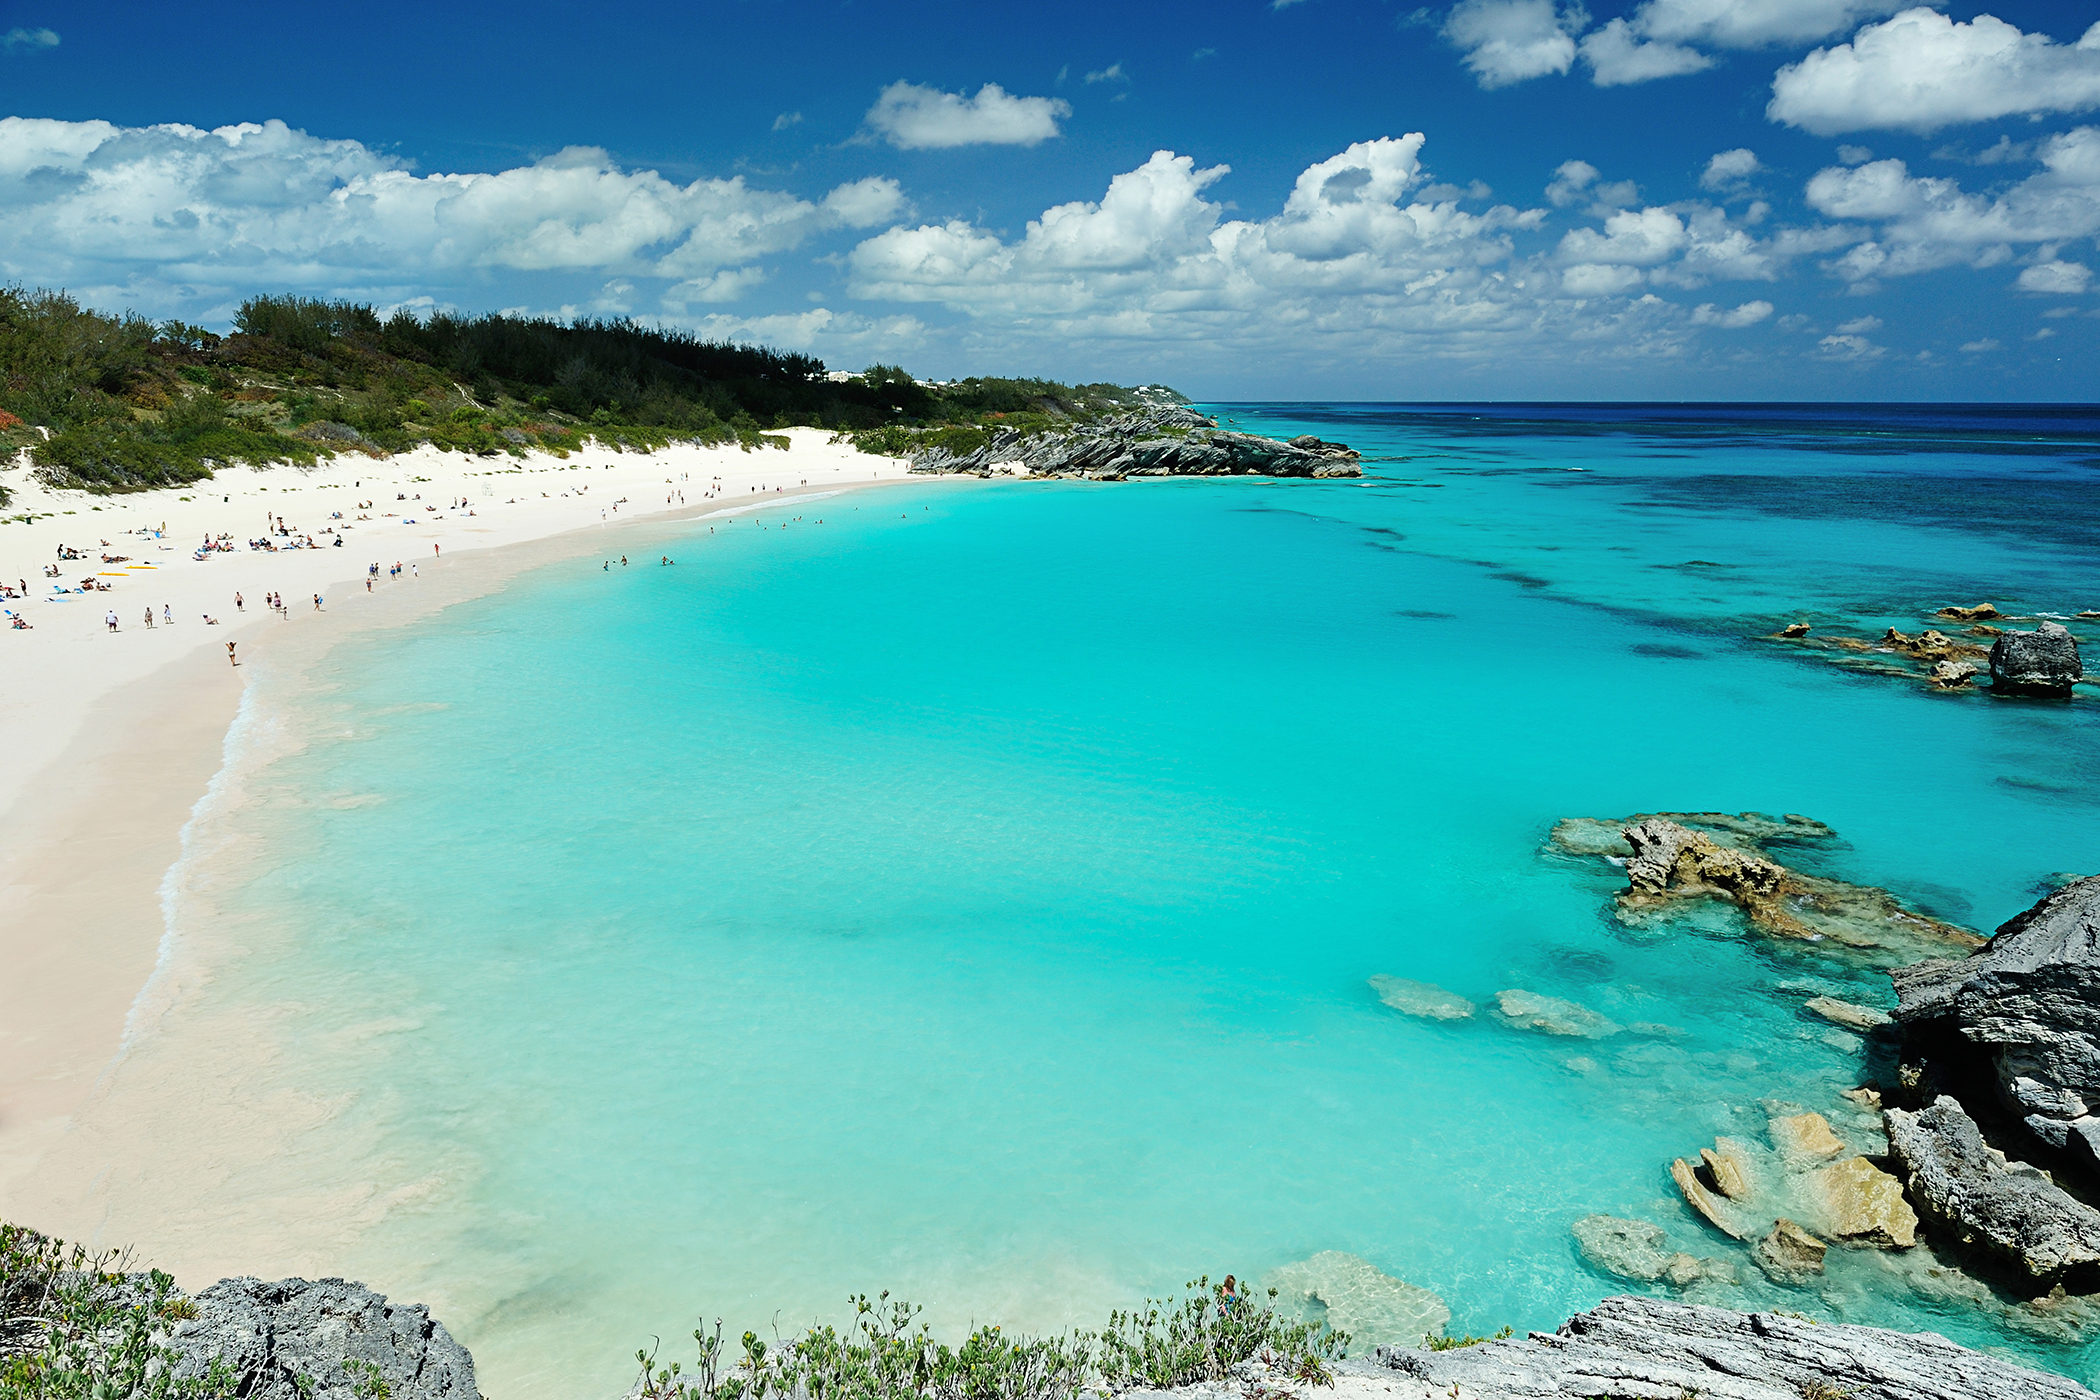 bermuda beach and bay.